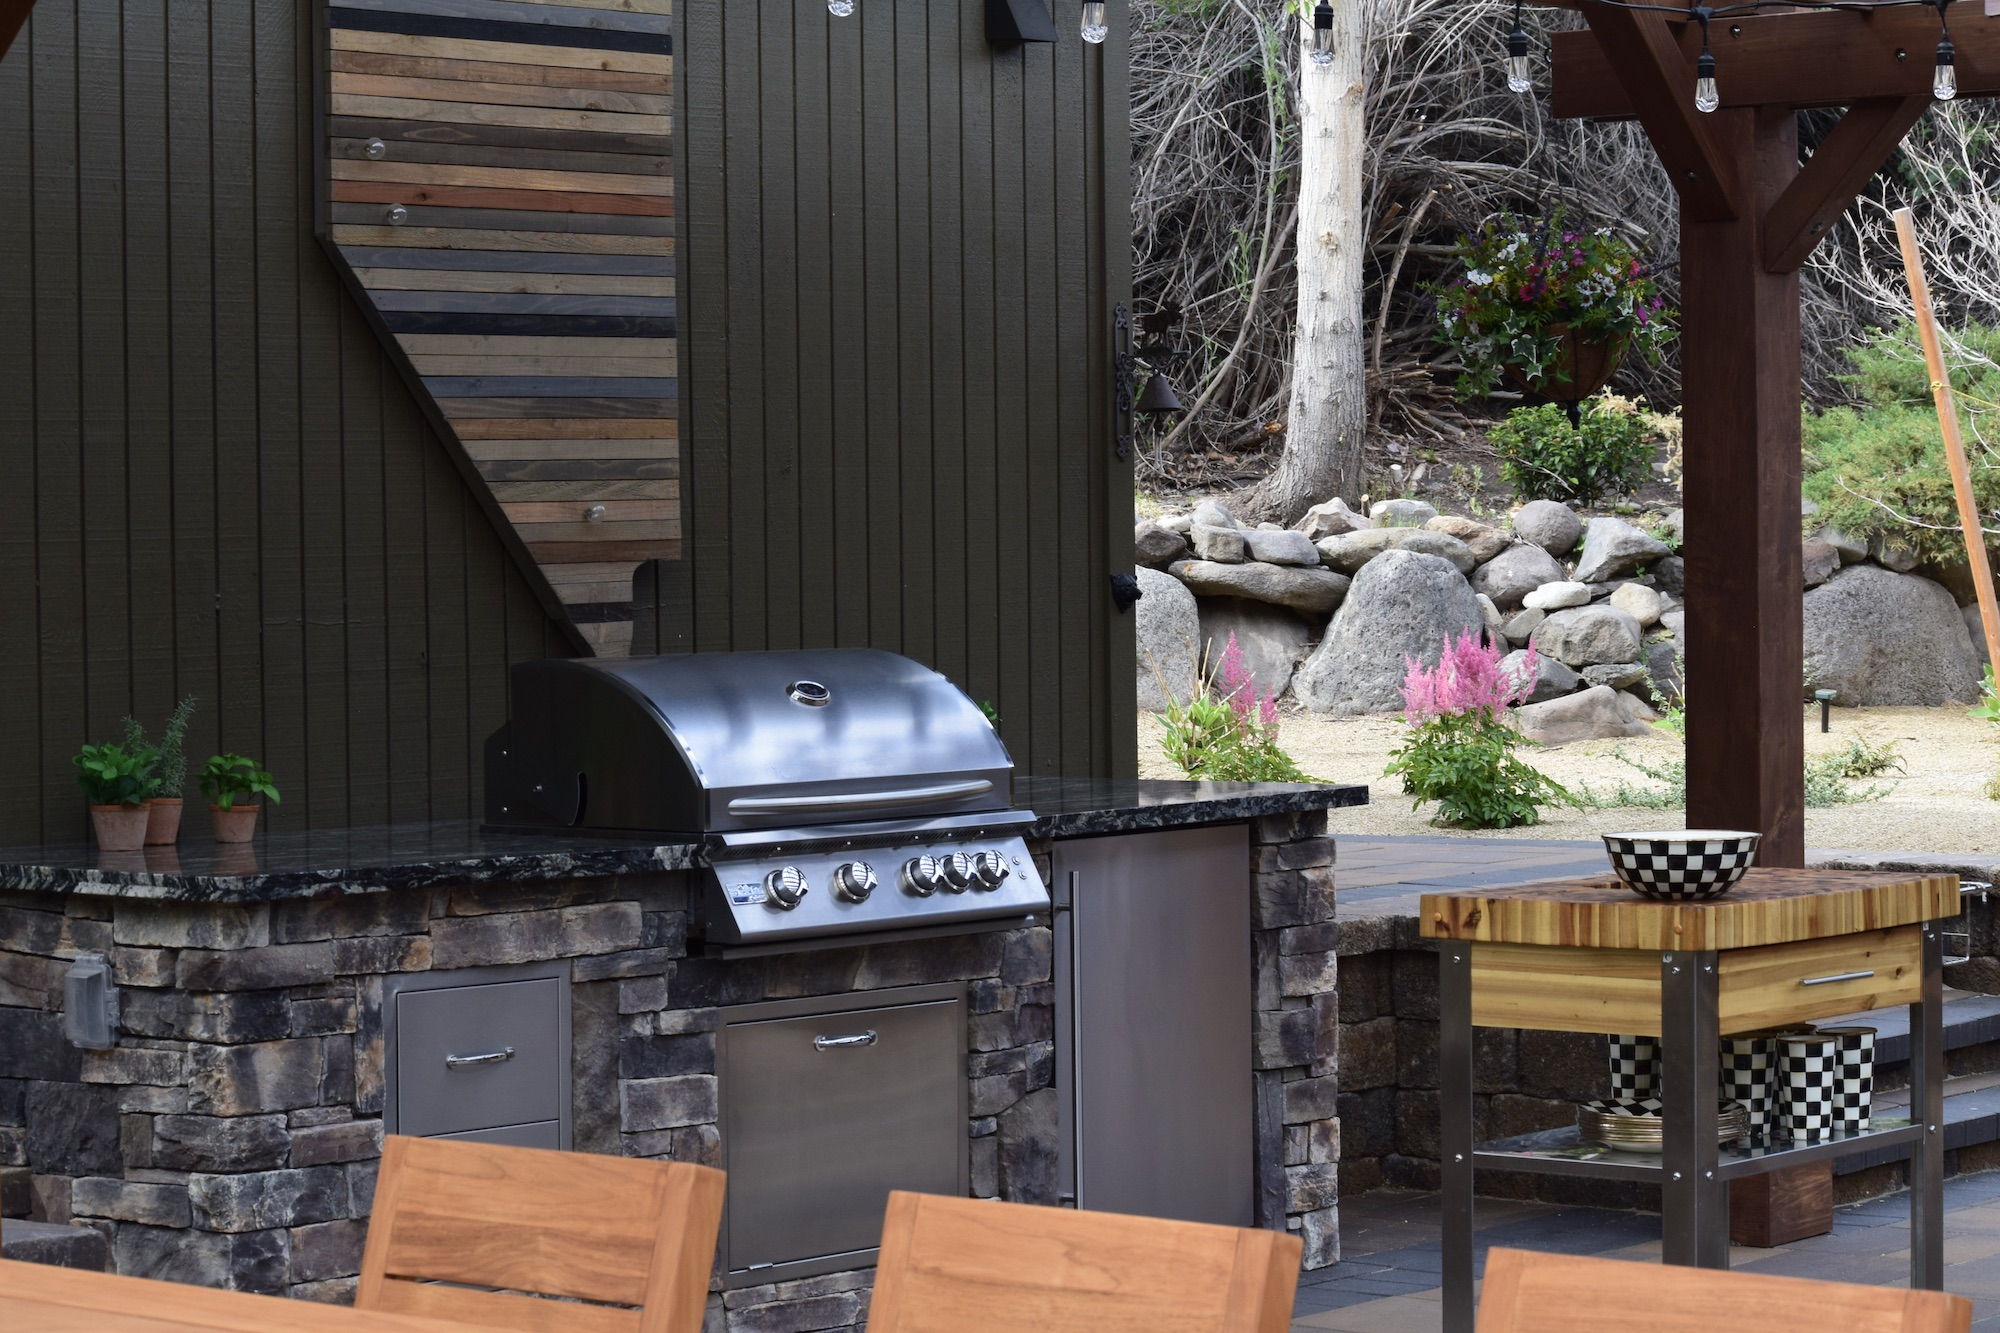 harris-landscape-construction-reno-outdoor-kitchen-pergola